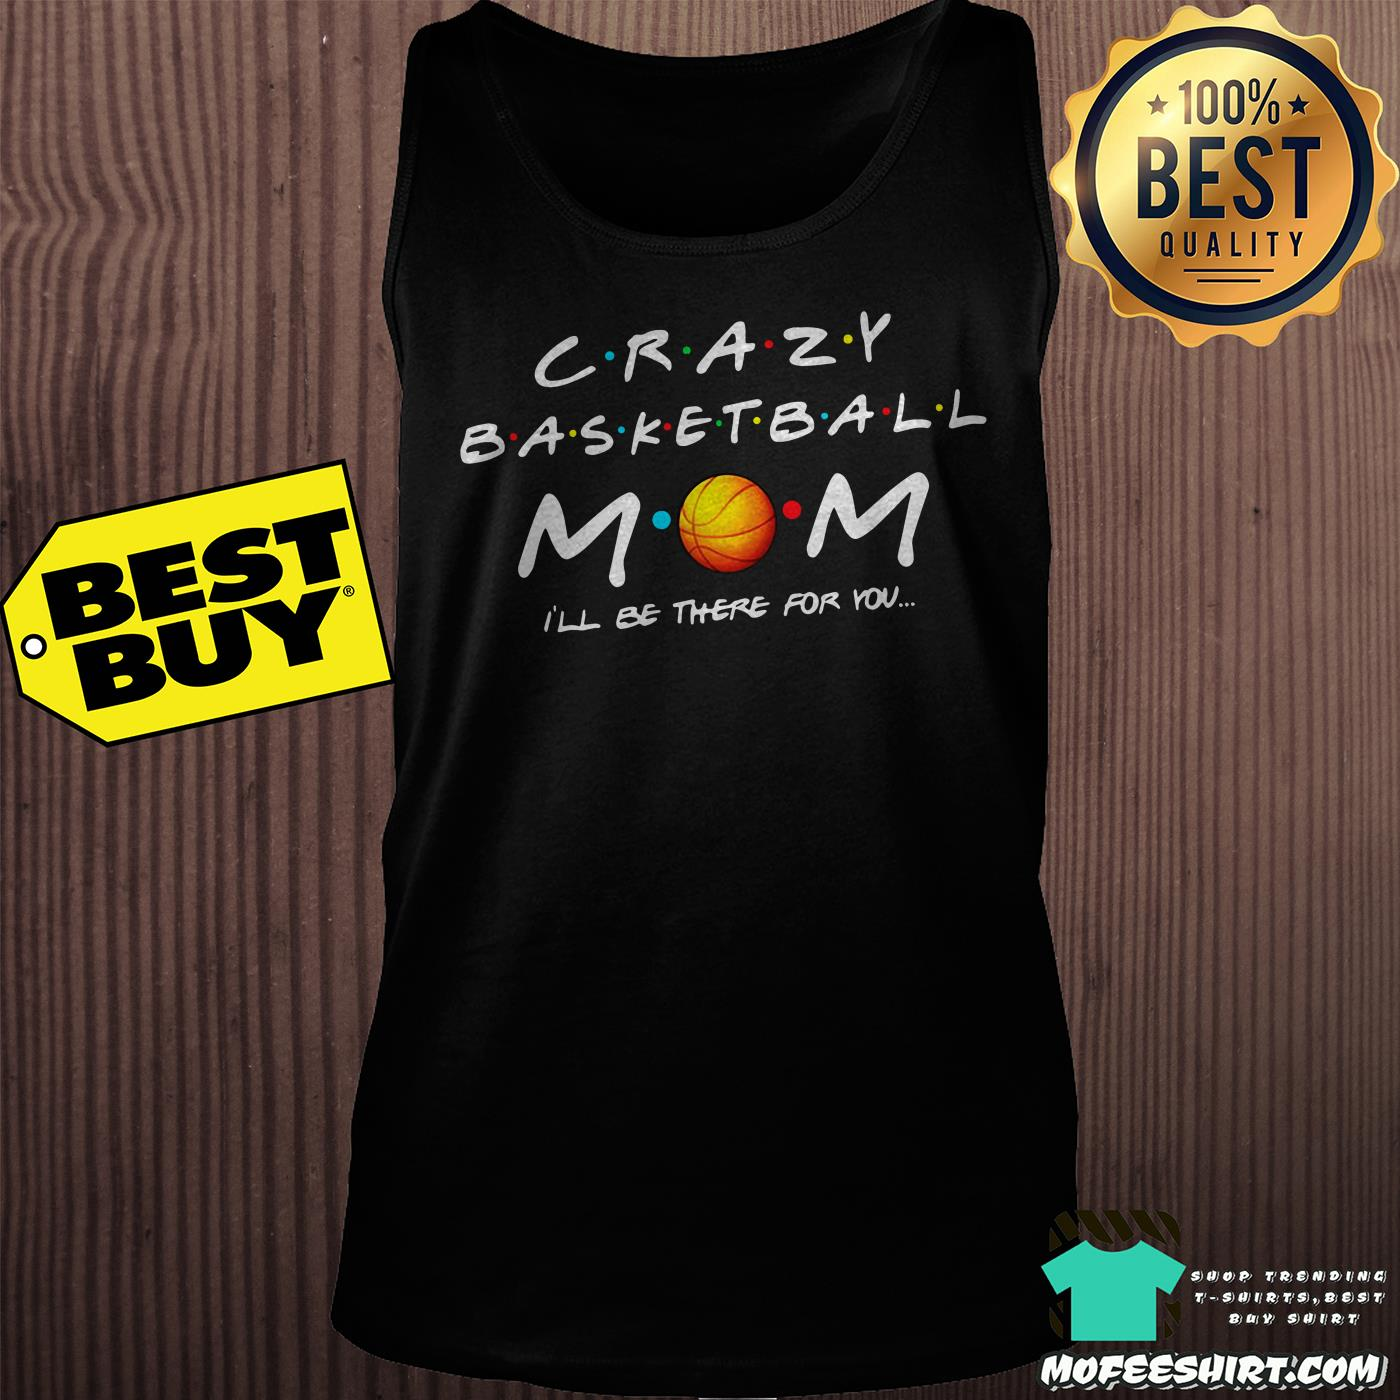 crazy basketball mom ill be there for you tank top - Crazy Basketball Mom I'll be there for you shirt